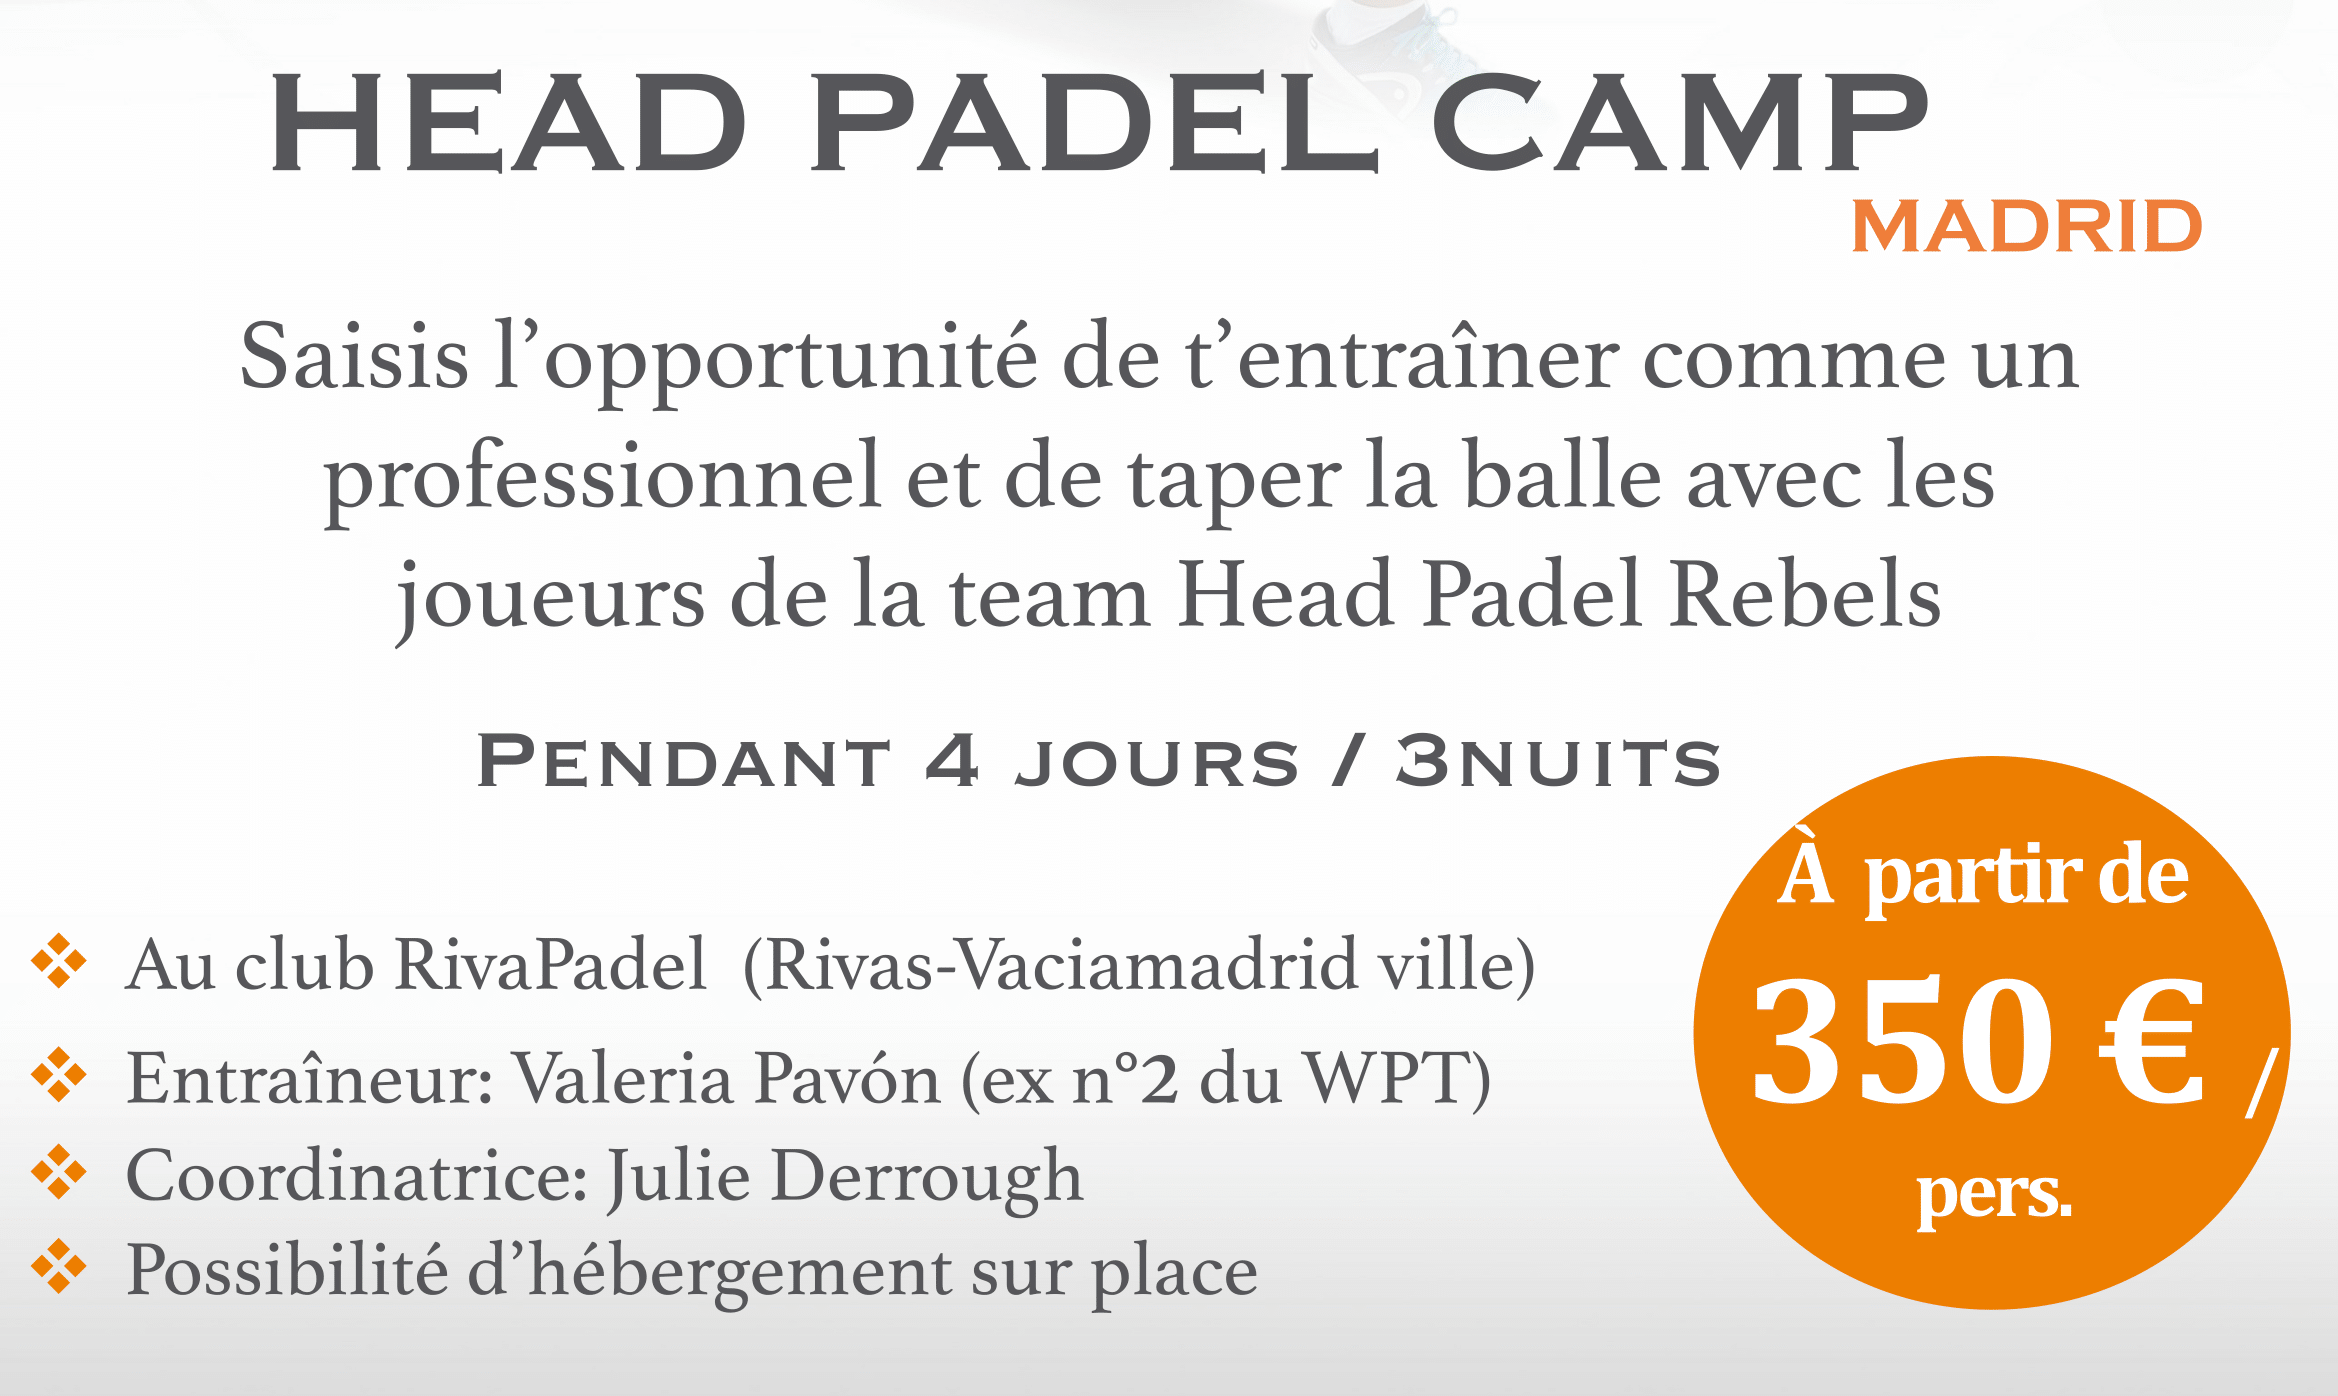 1ère édition du Head Padel Camp à Madrid